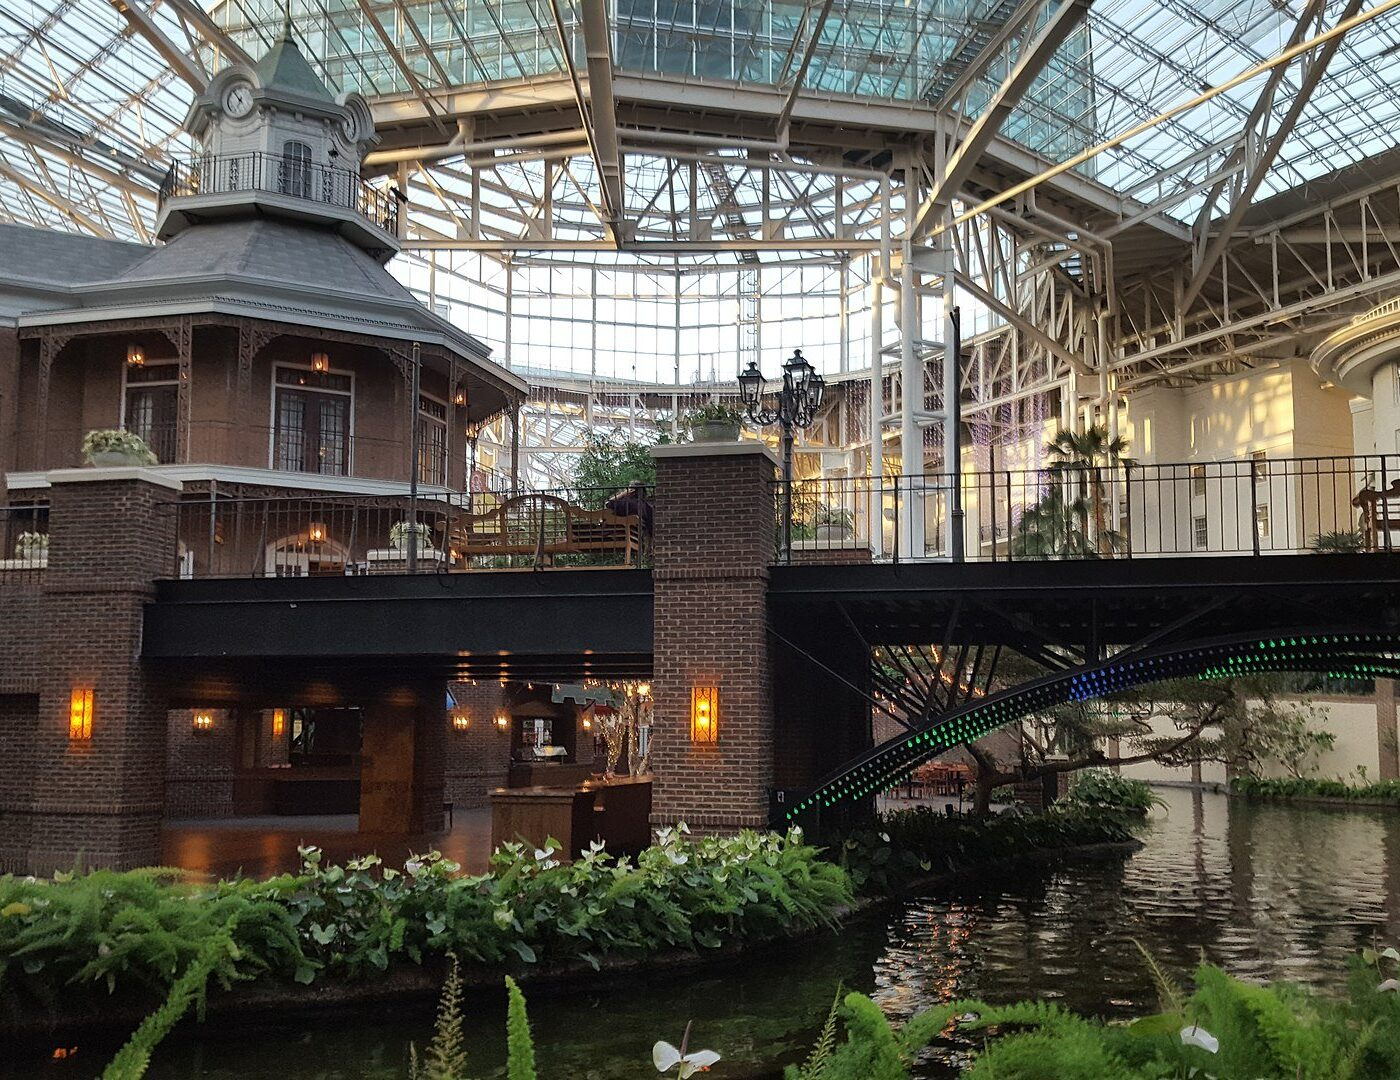 Gaylord Opryland Resort and Convention Center, Nashville, Tennessee (Photo Credit: Wikipedia)